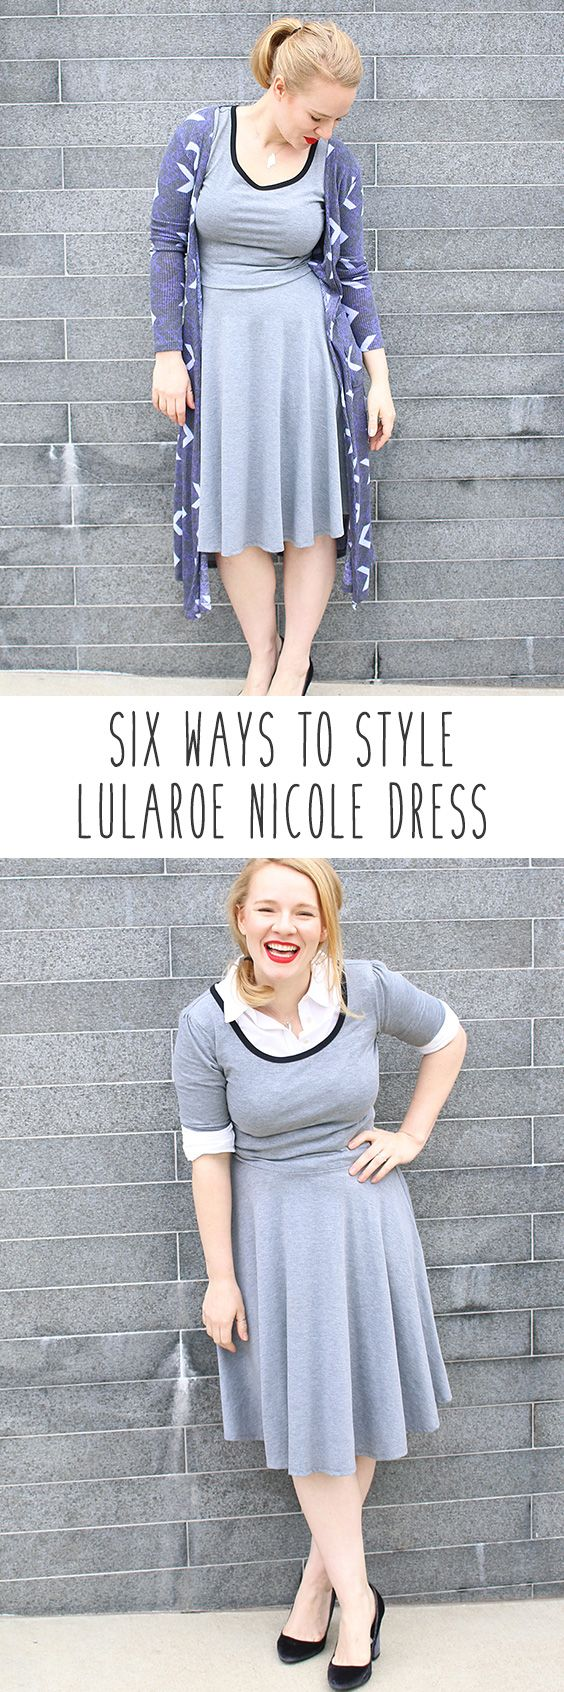 How to style Lularoe Nicole Dress! You love the Lularoe Nicole dress but can't figure out how to style it? LuLaRoe Nicole is perfect for work or play!